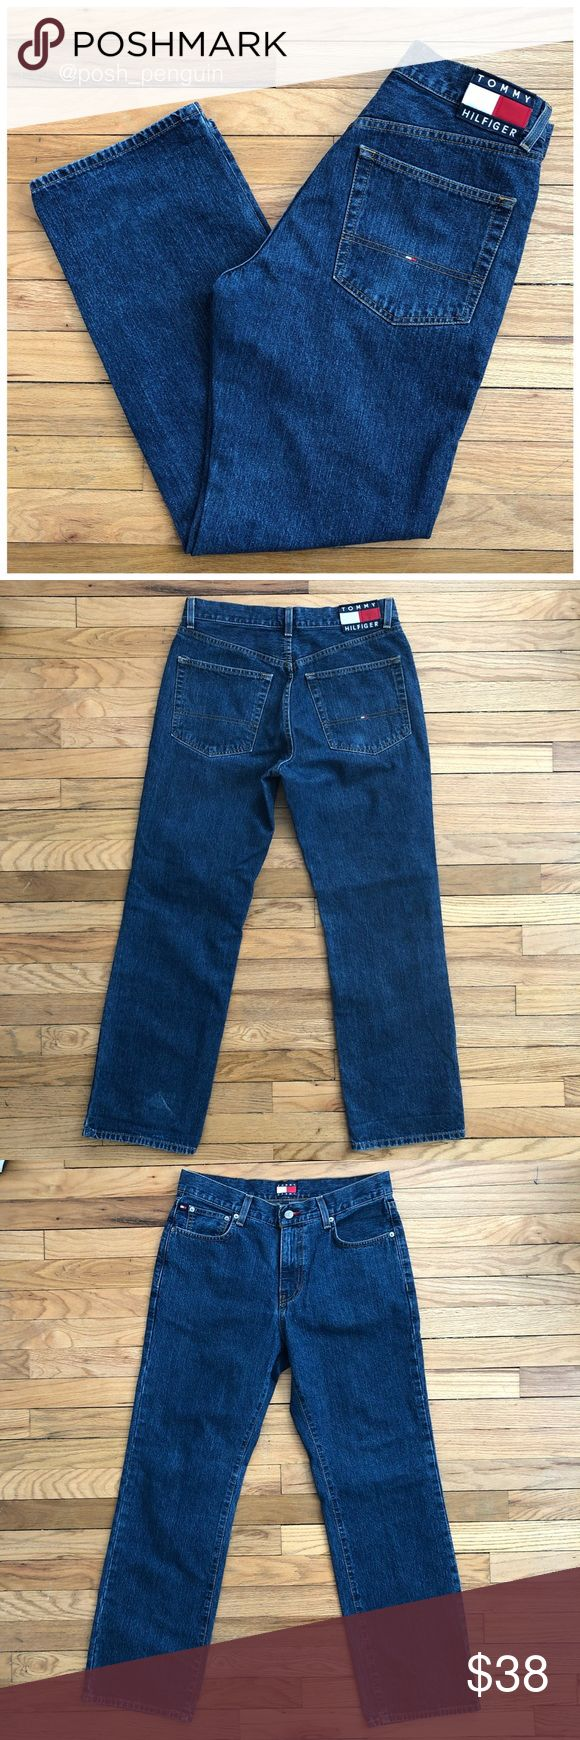 Vintage Tommy Hilfiger Spell out jeans 30x30 Grab a classic pair of vintage Tommy Hilfiger Jeans.  These jeans are in great shape for there age and have no major flaws or defects.  Red and white Tommy Hilfiger patch on the back with the brand name spelled out on back.  There is a sleight fade to back left leg as pictured. Tommy Hilfiger Jeans Straight